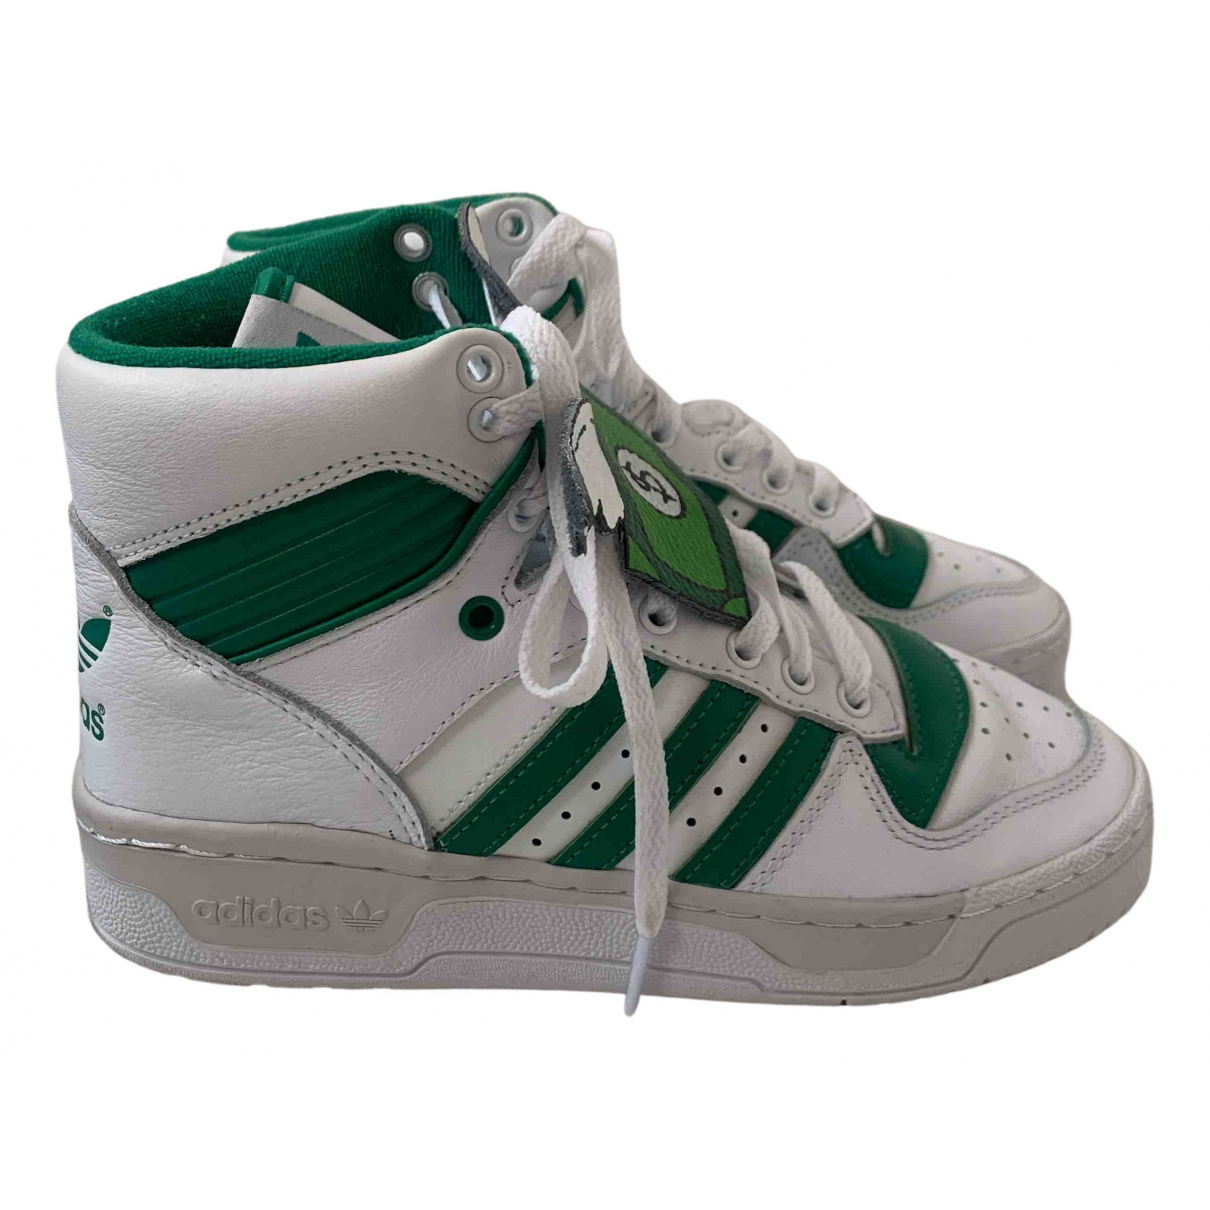 Adidas N White Leather Trainers for Women 4 UK